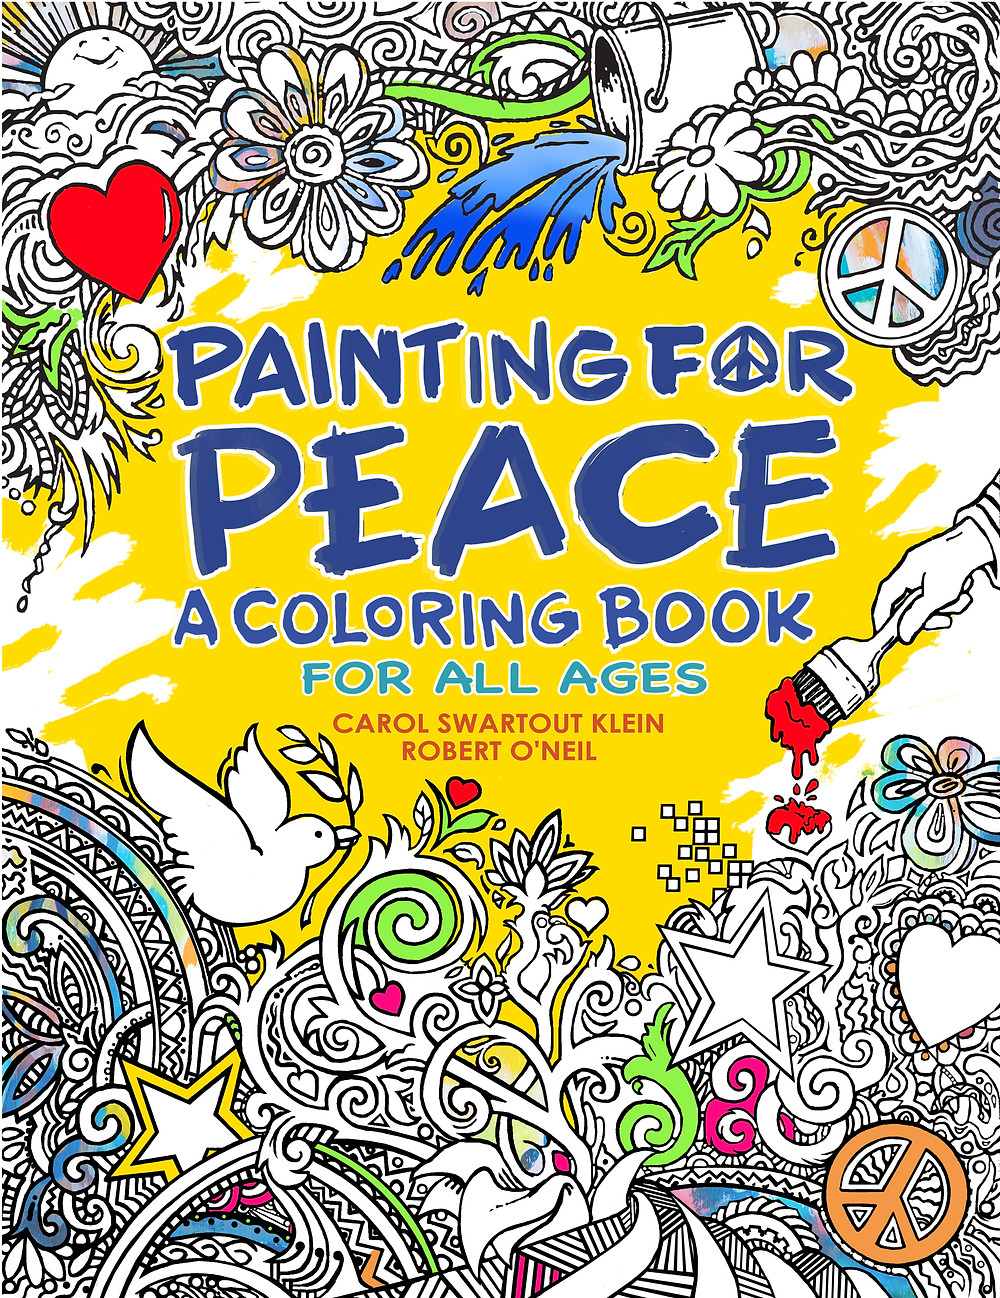 Painting for Peace coloring book, coloring book for all ages, adult coloring book